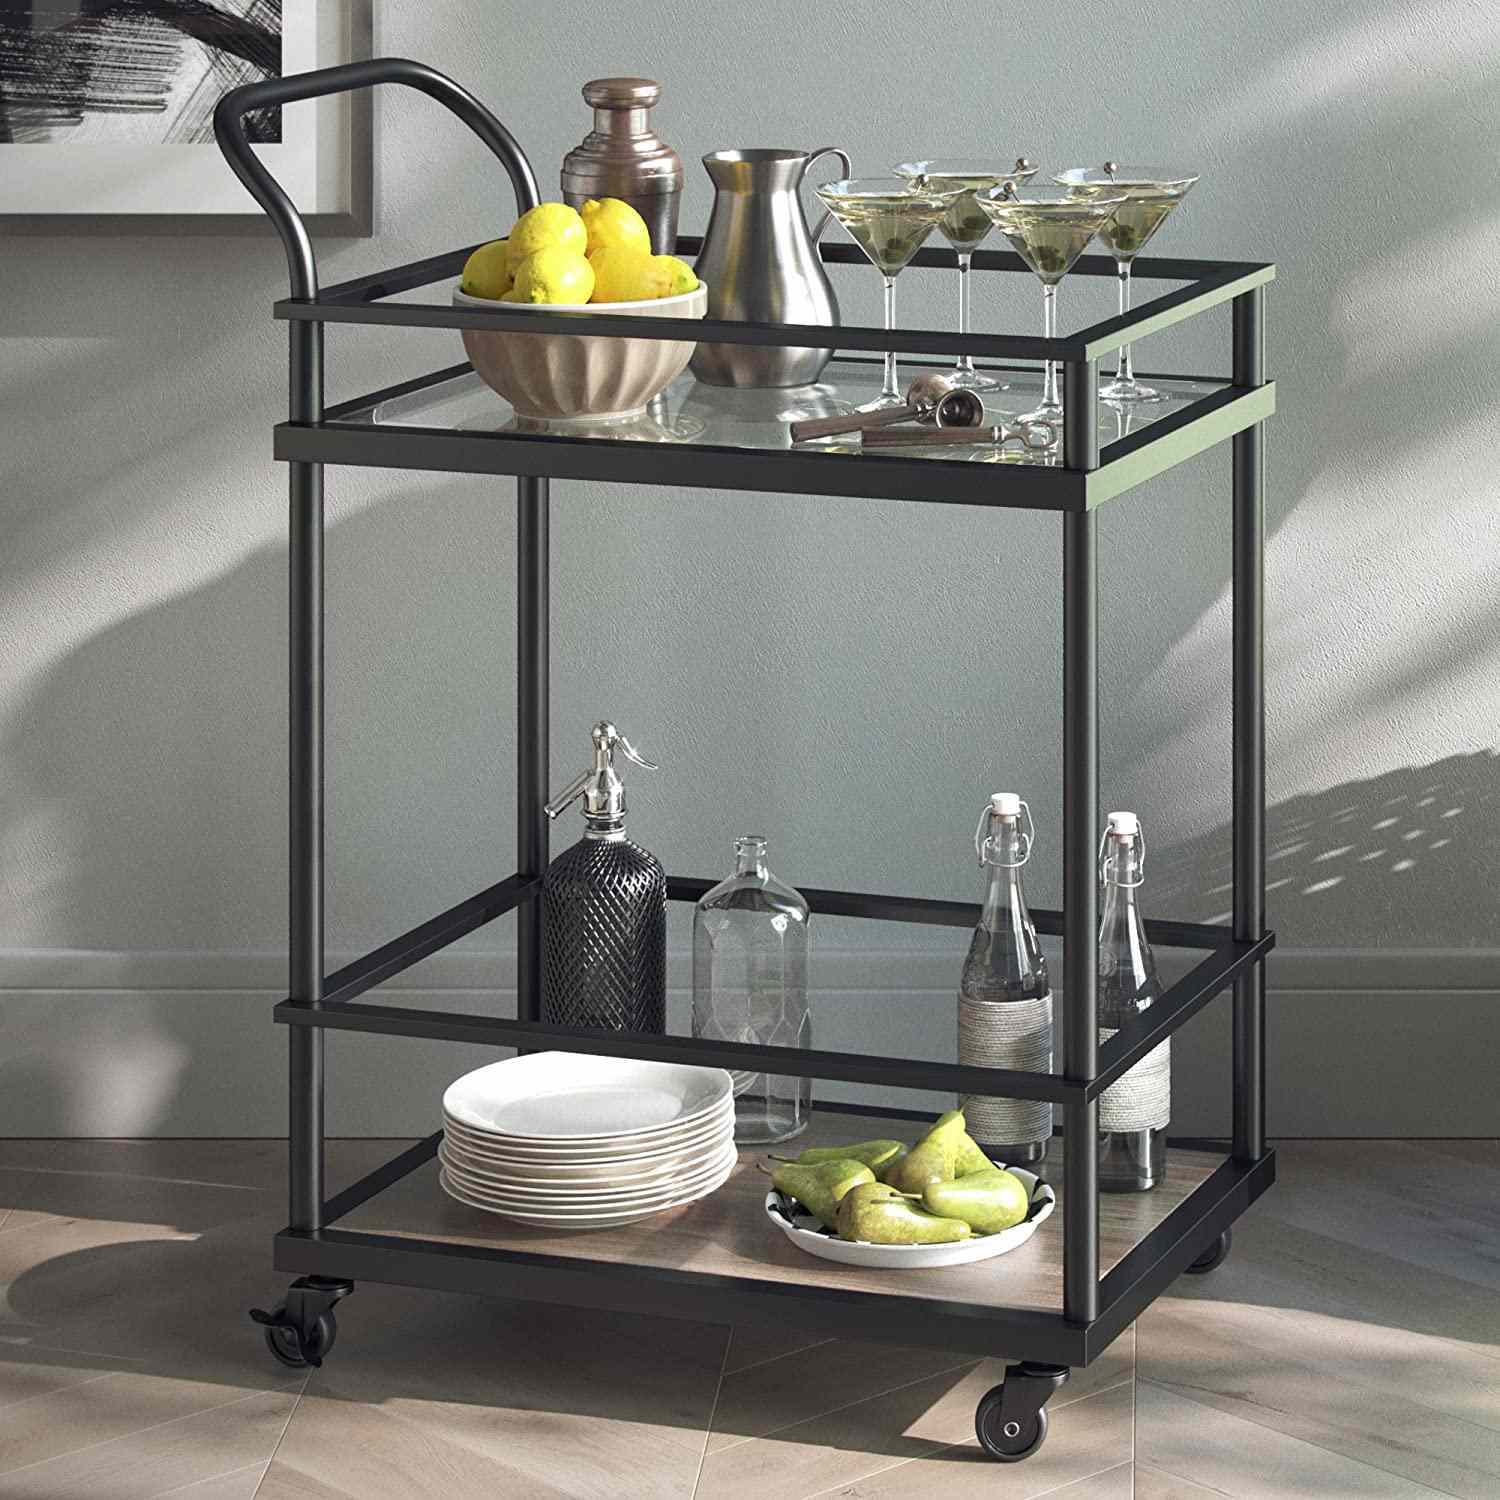 The 8 Best Bar Carts Of 2021